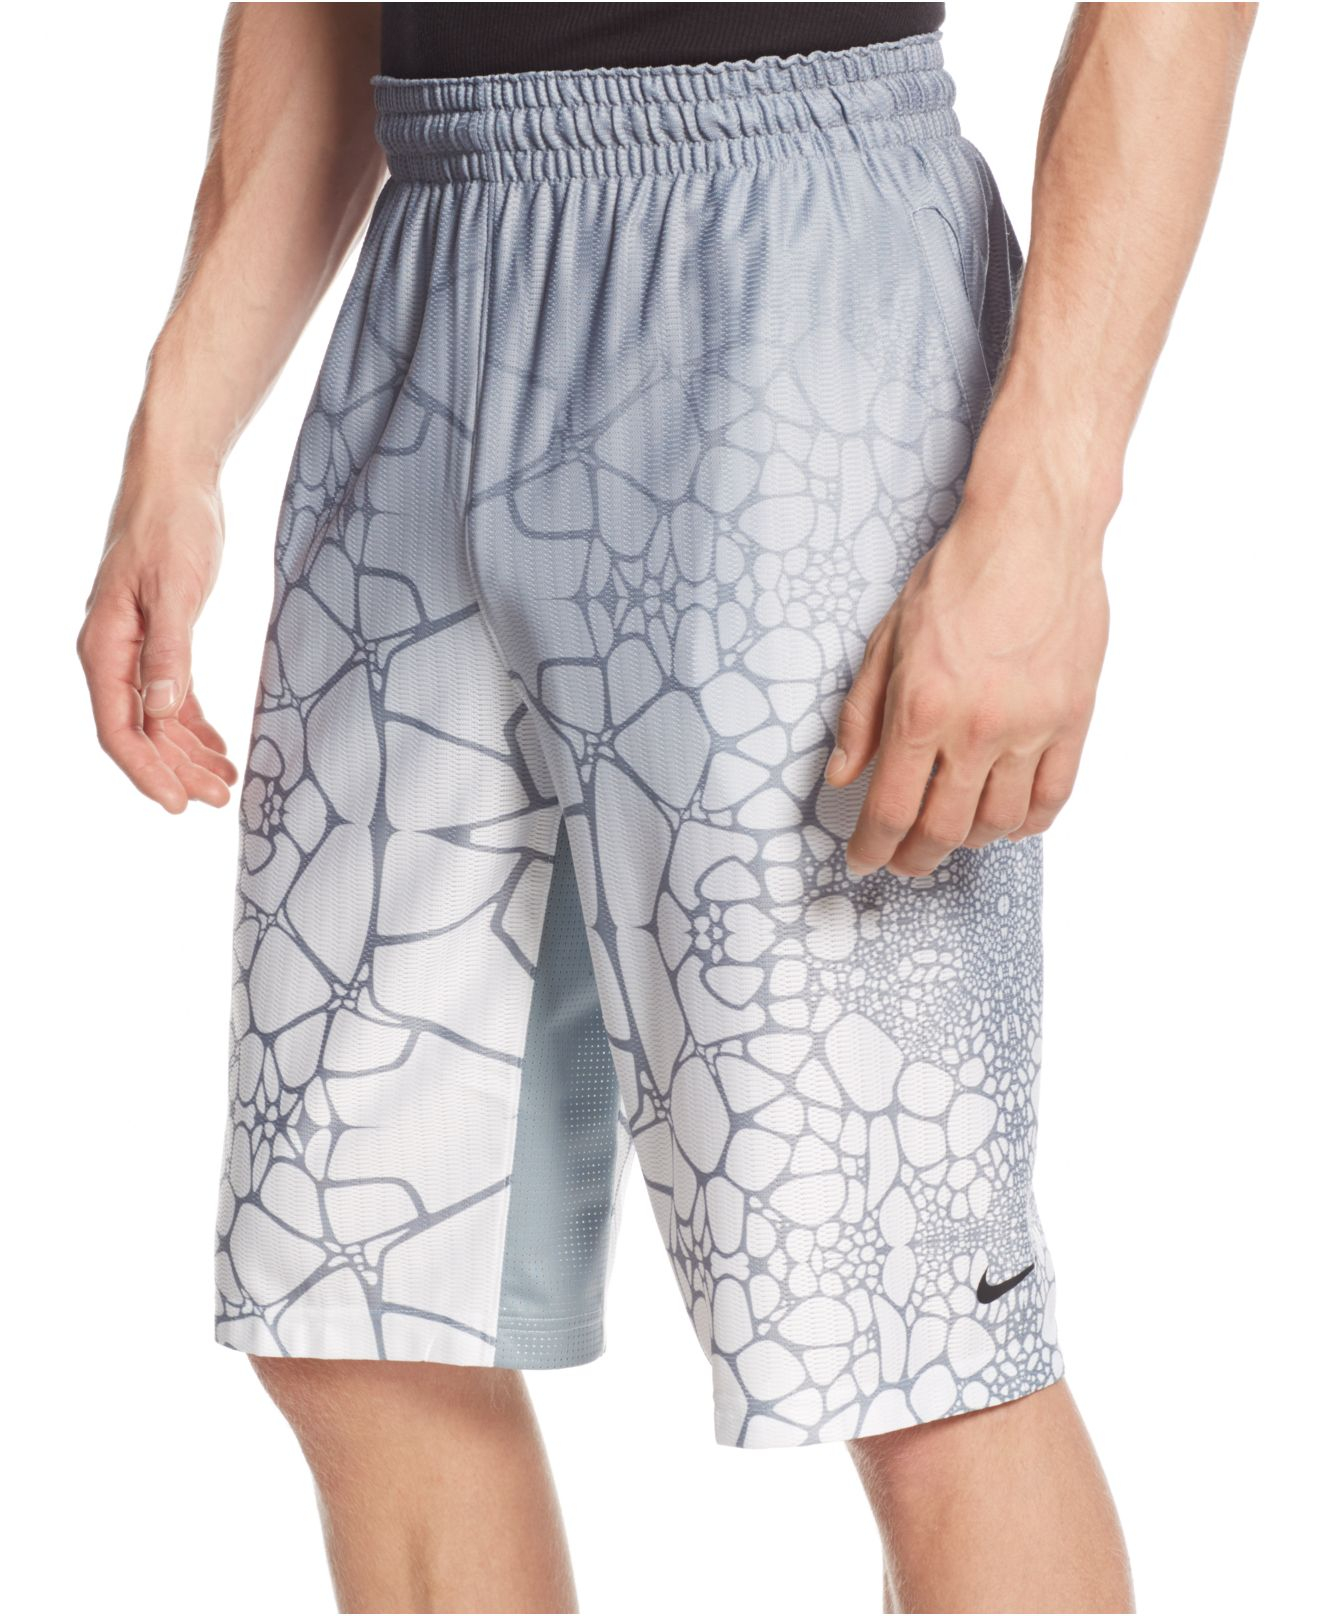 4793ee7cc6d3 Specials  nike boys lebron tamed basketballe shorts . ...